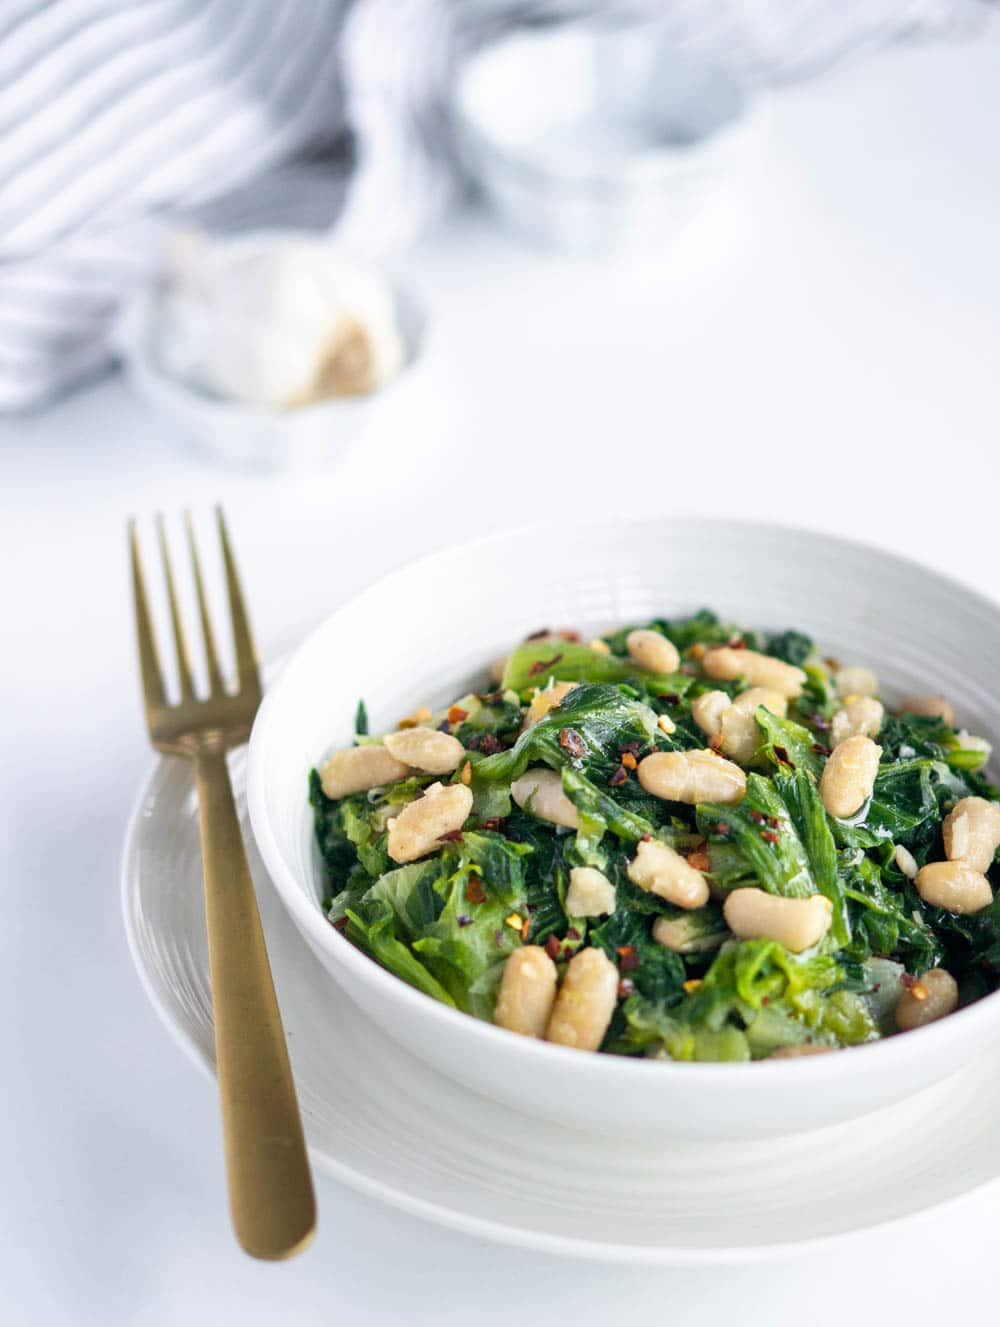 Side view of a dish of escarole and beans with garlic in the background